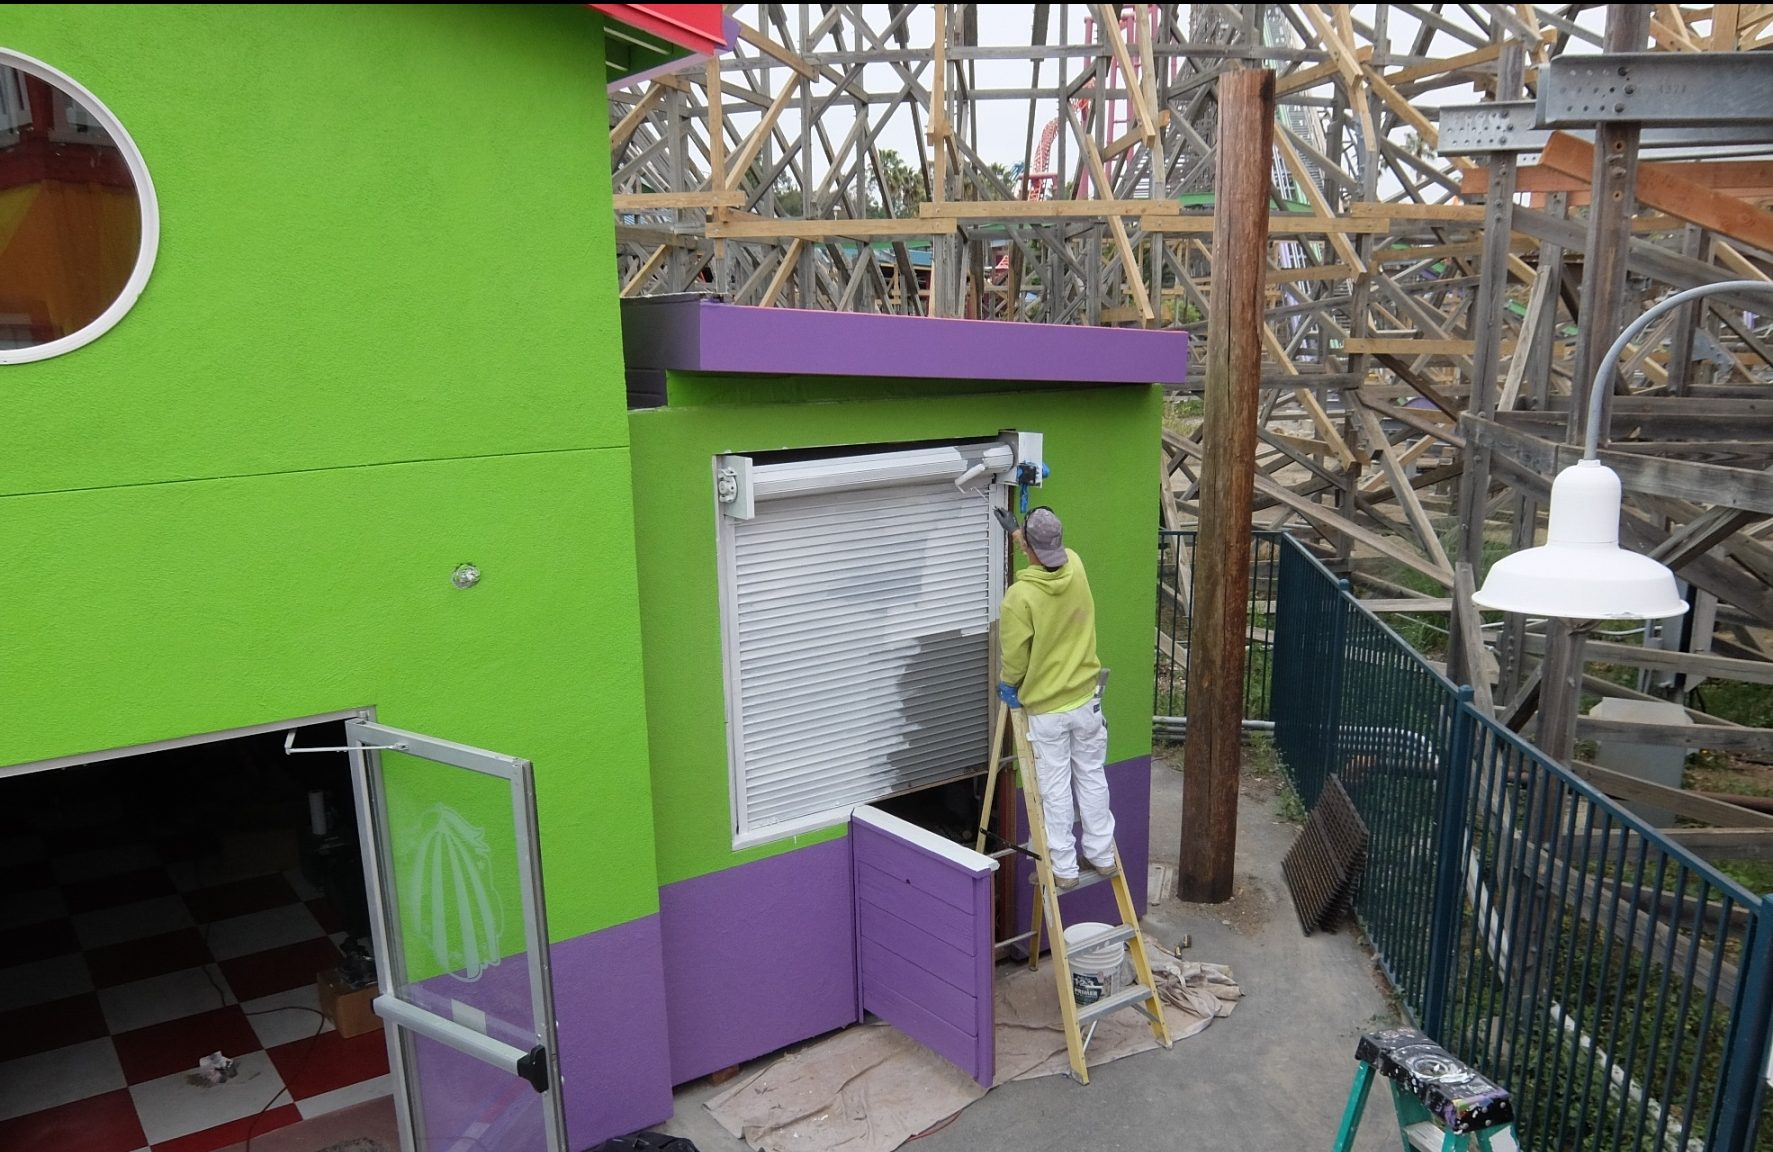 The exit gift shop is still having some finishing touches placed on it.